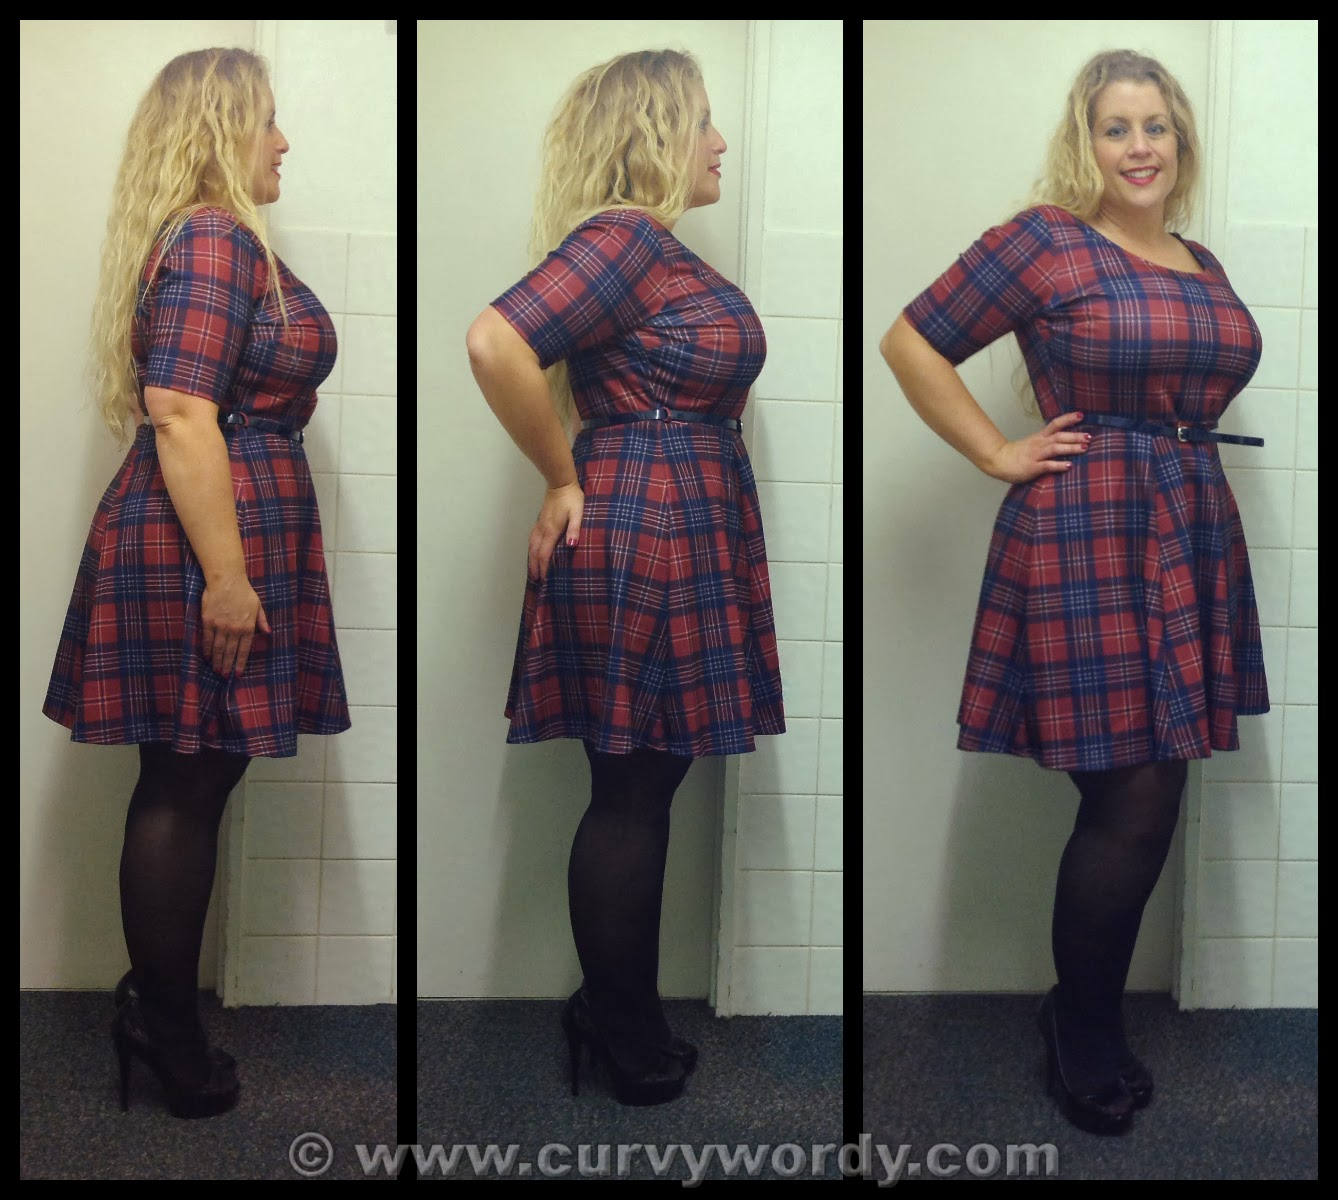 db82a54cf6 Pink Clove Tartan Skater Dress 18 - Curvy Wordy